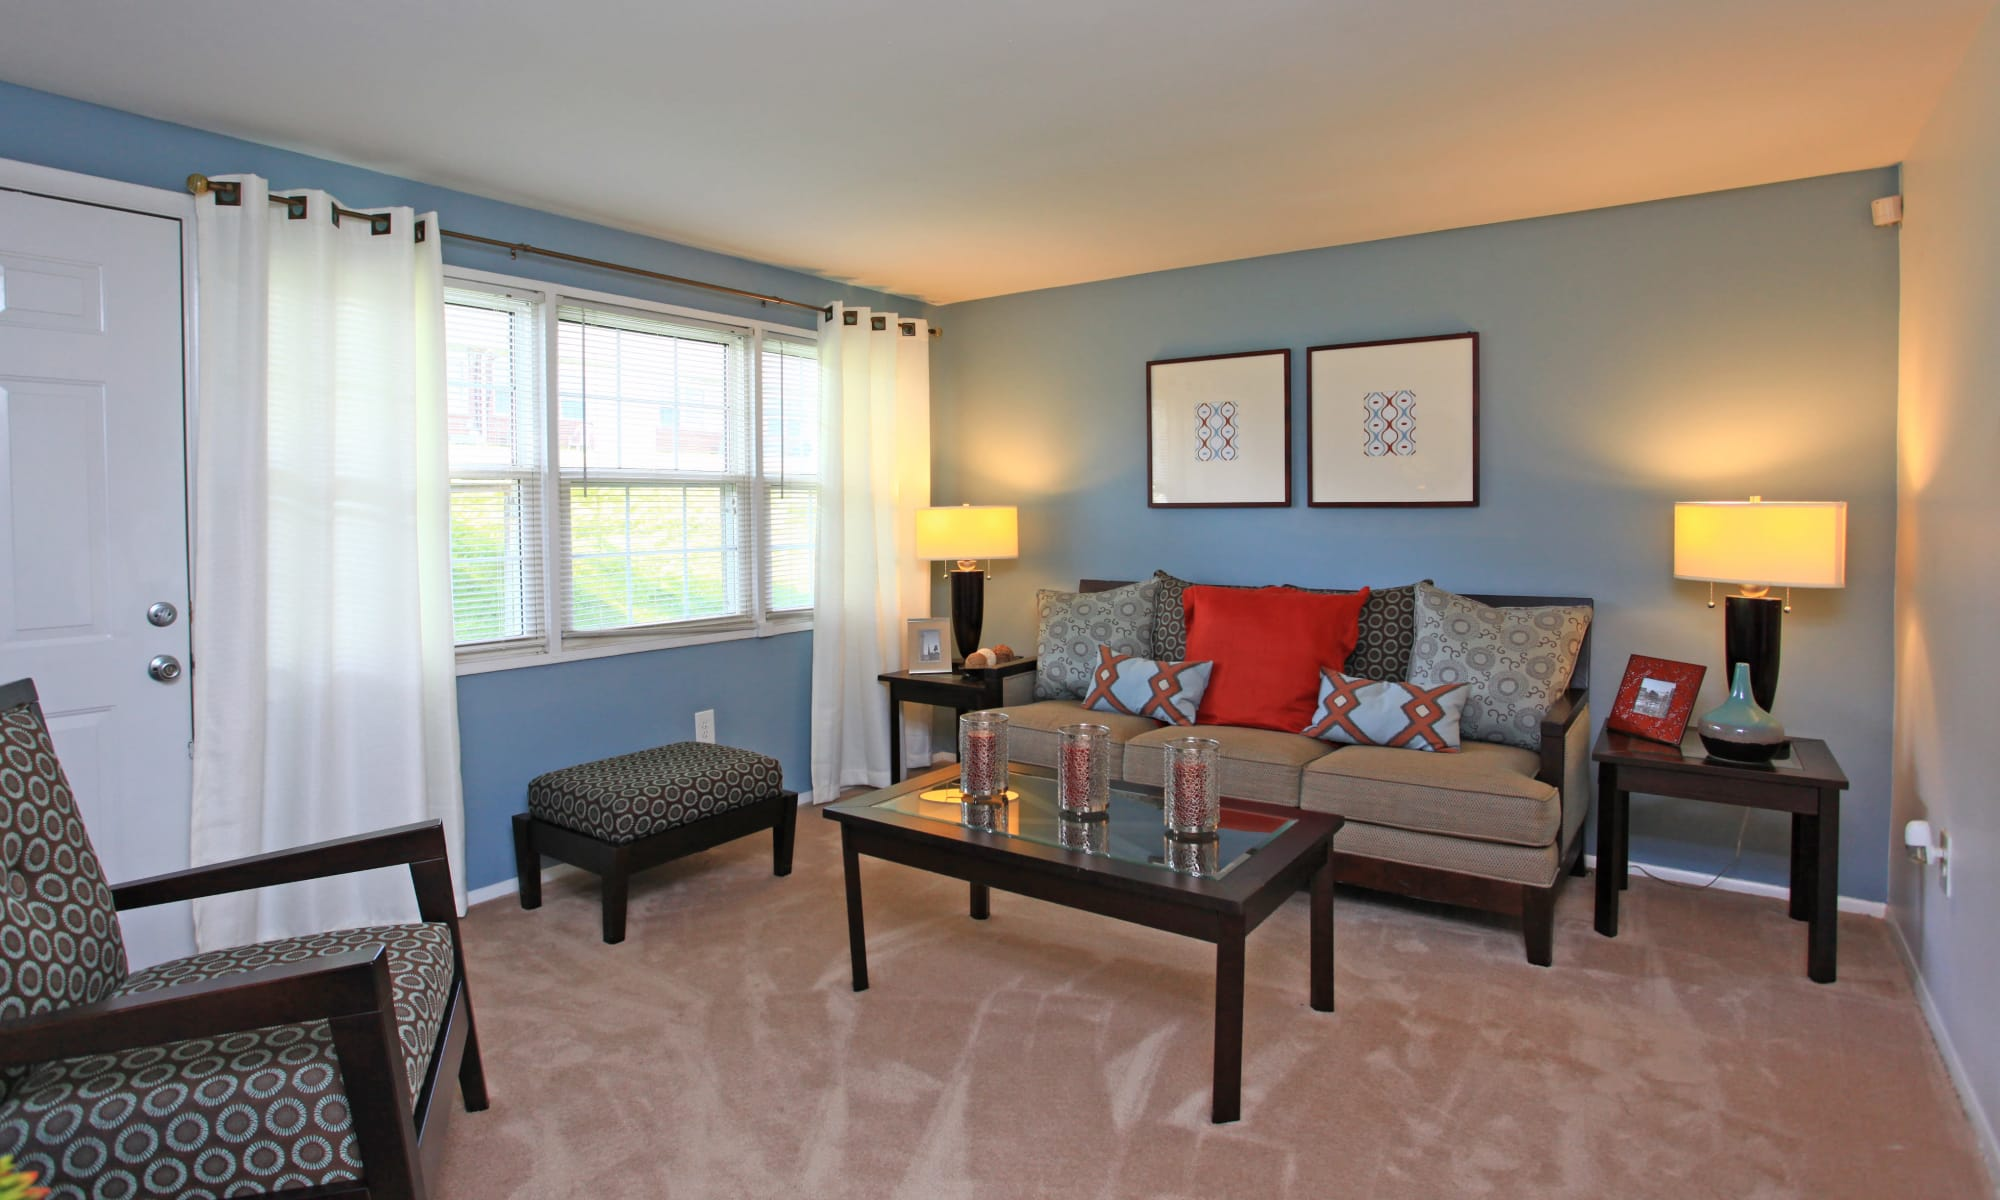 Halethorpe, MD Townhomes for Rent in Lansdowne | Highland